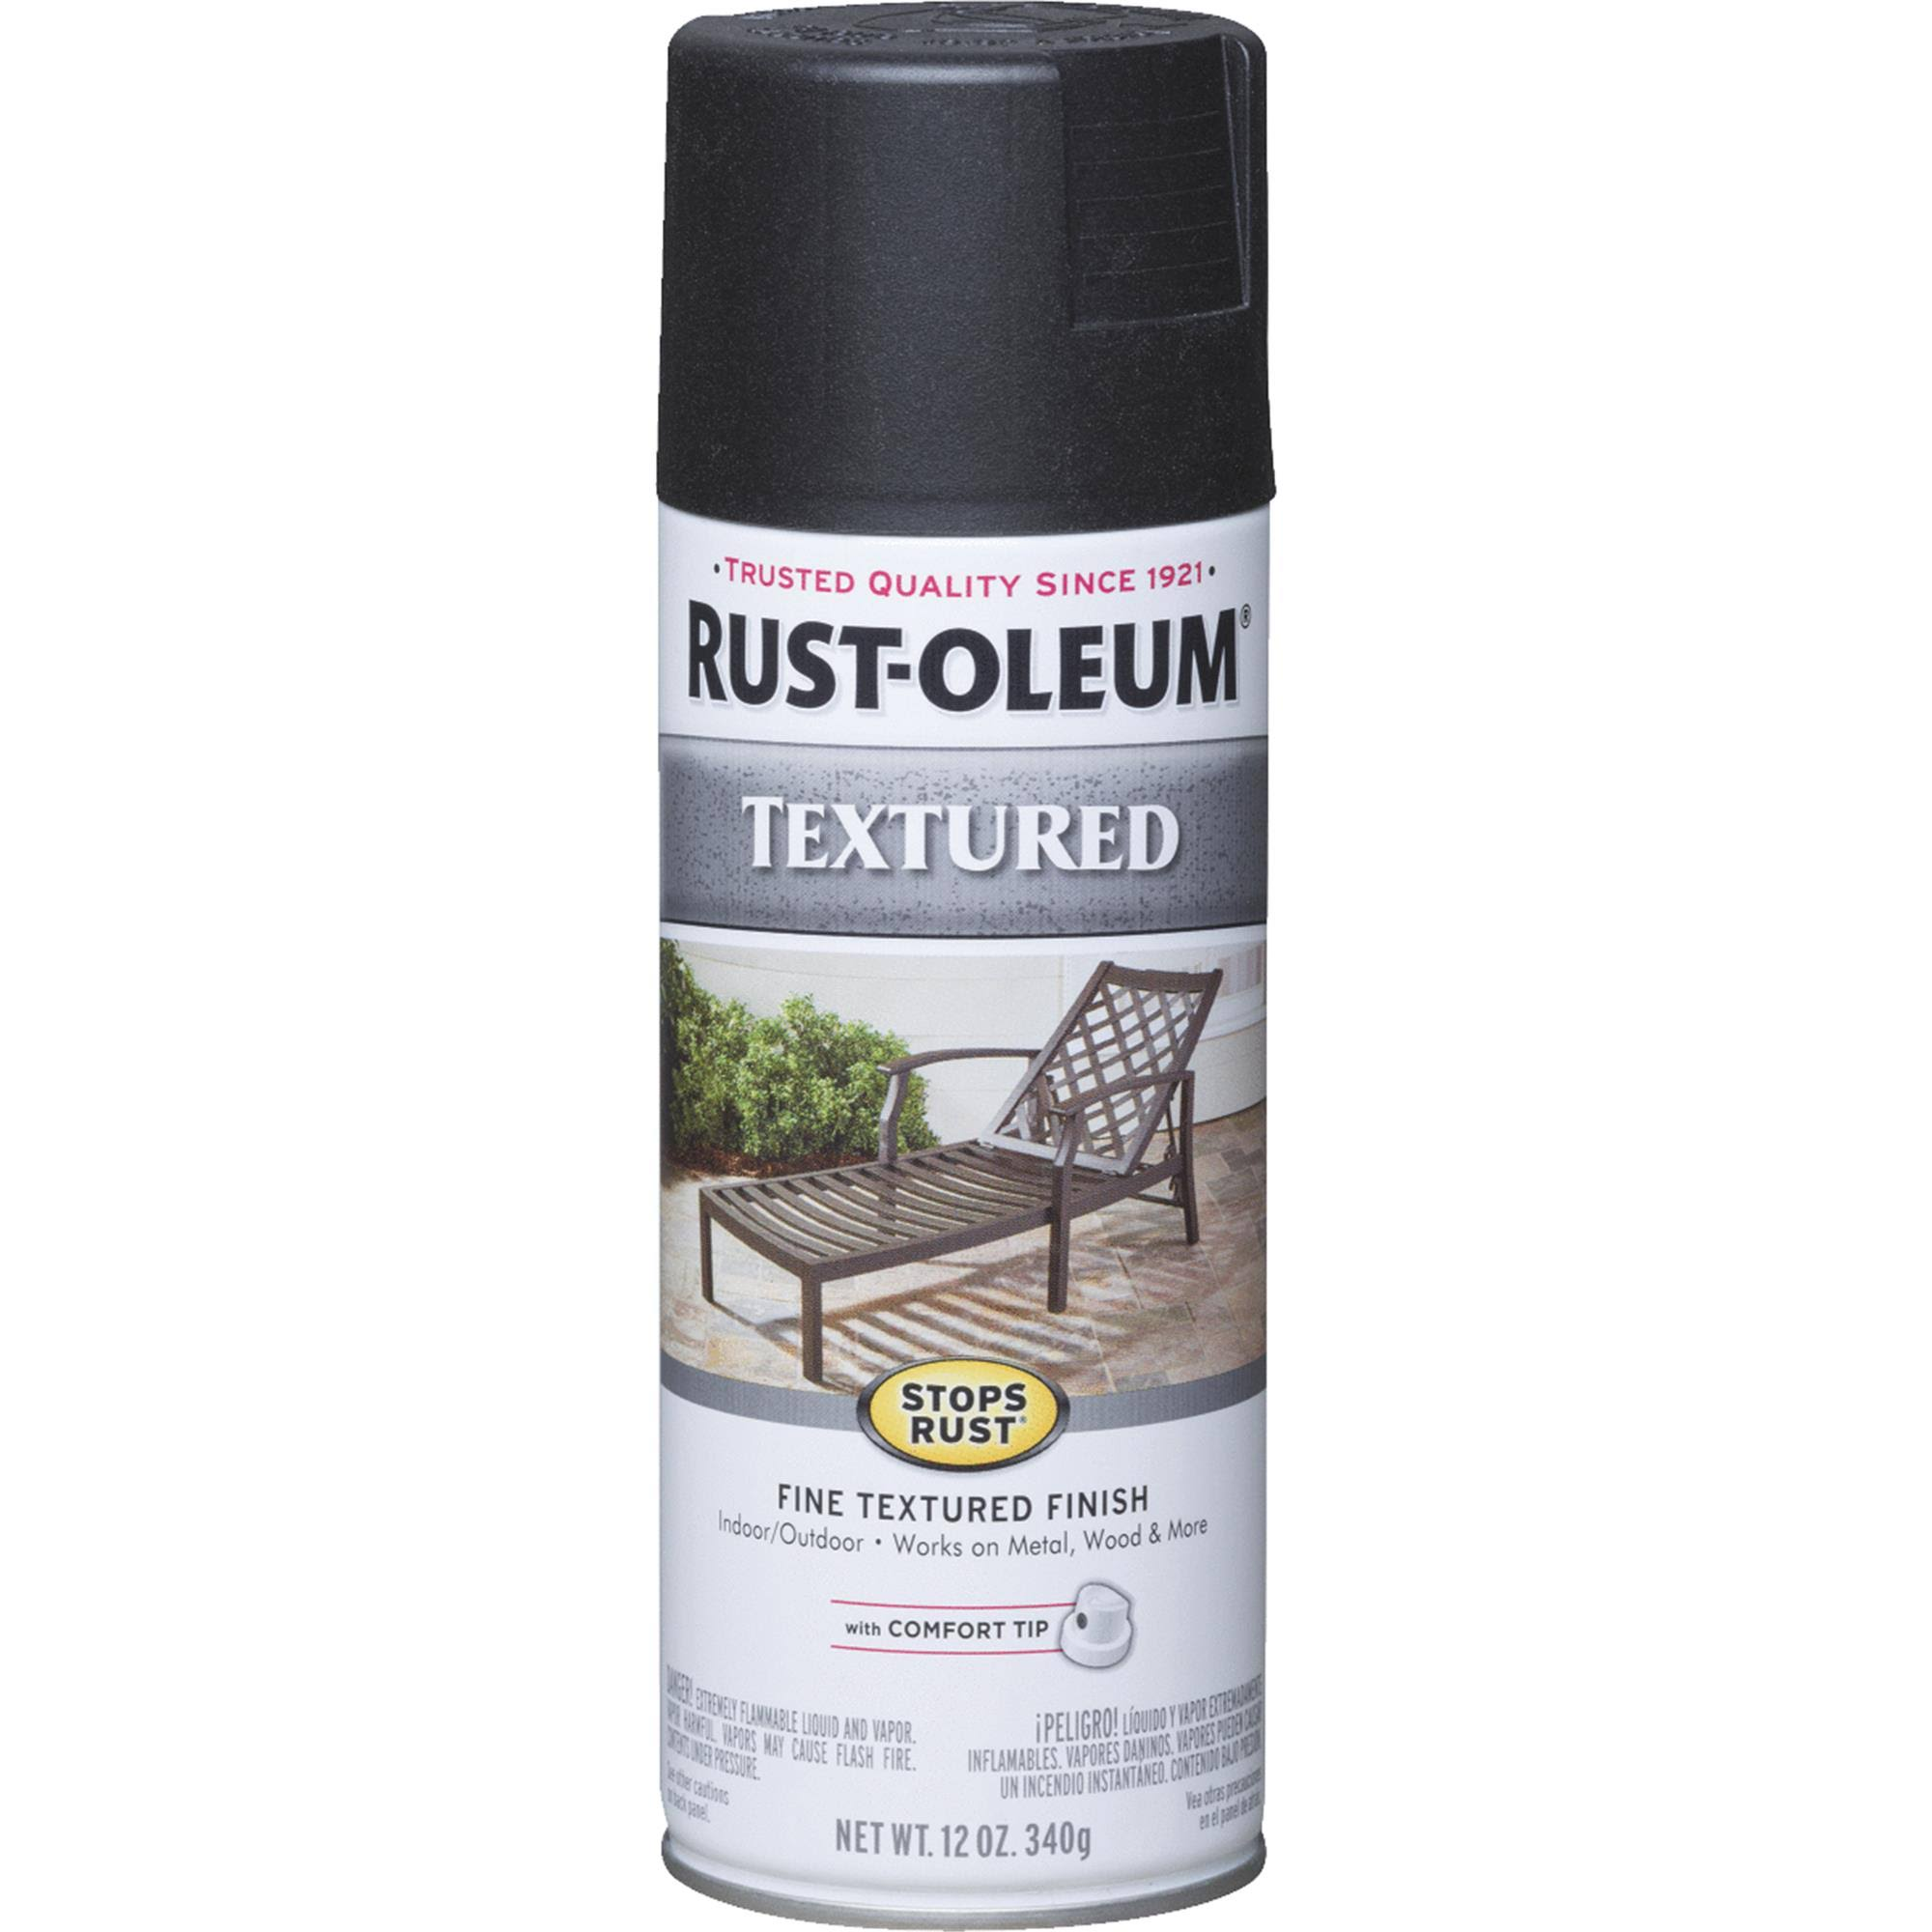 Rust-Oleum Textured Finish Spray Paint - Stops Rust, 12 oz